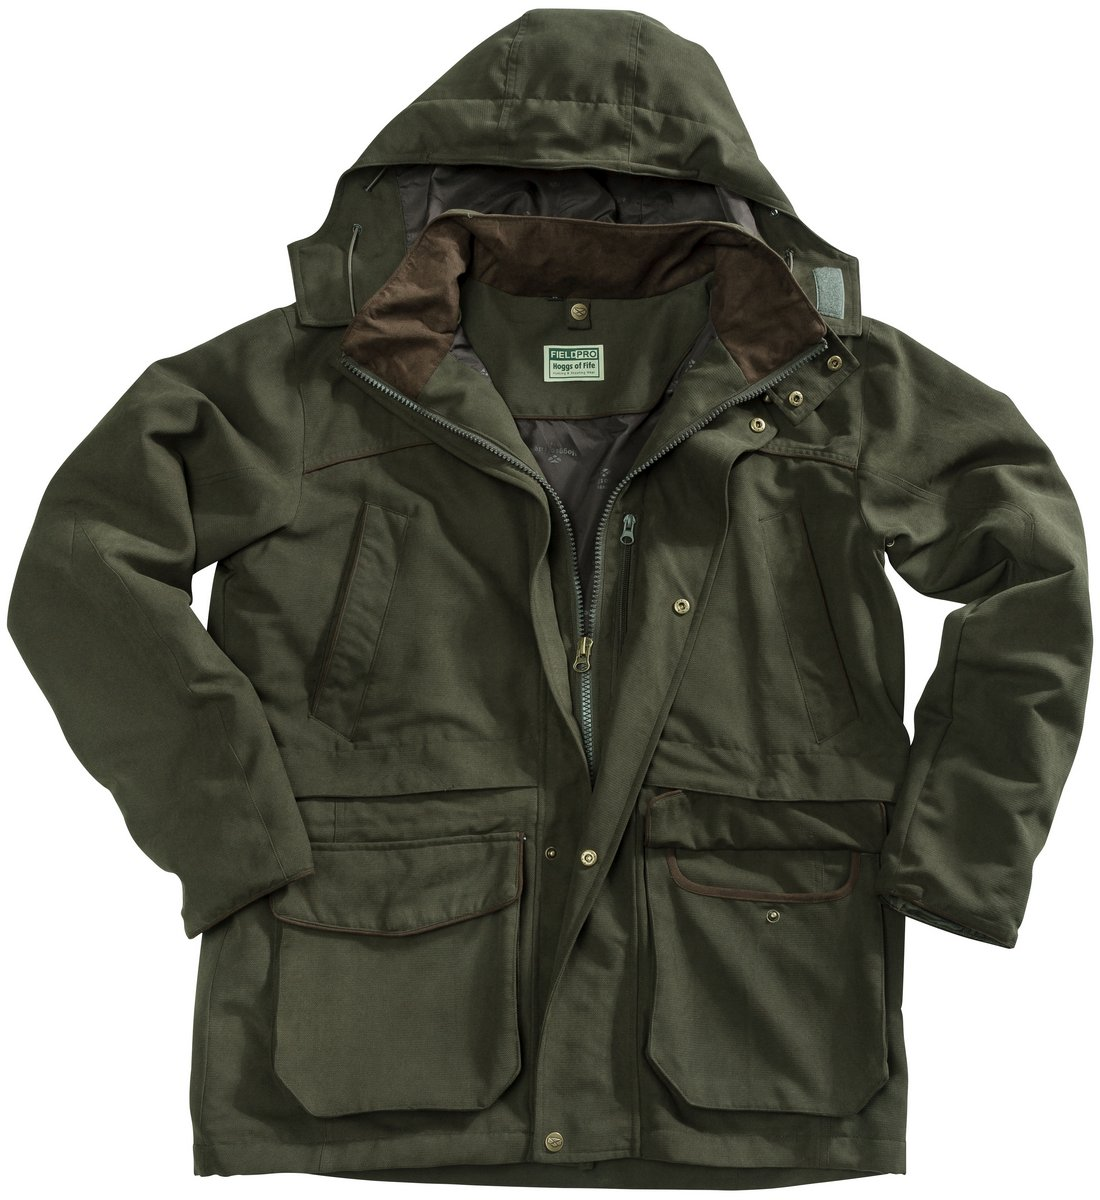 Kincraig Field Jacket